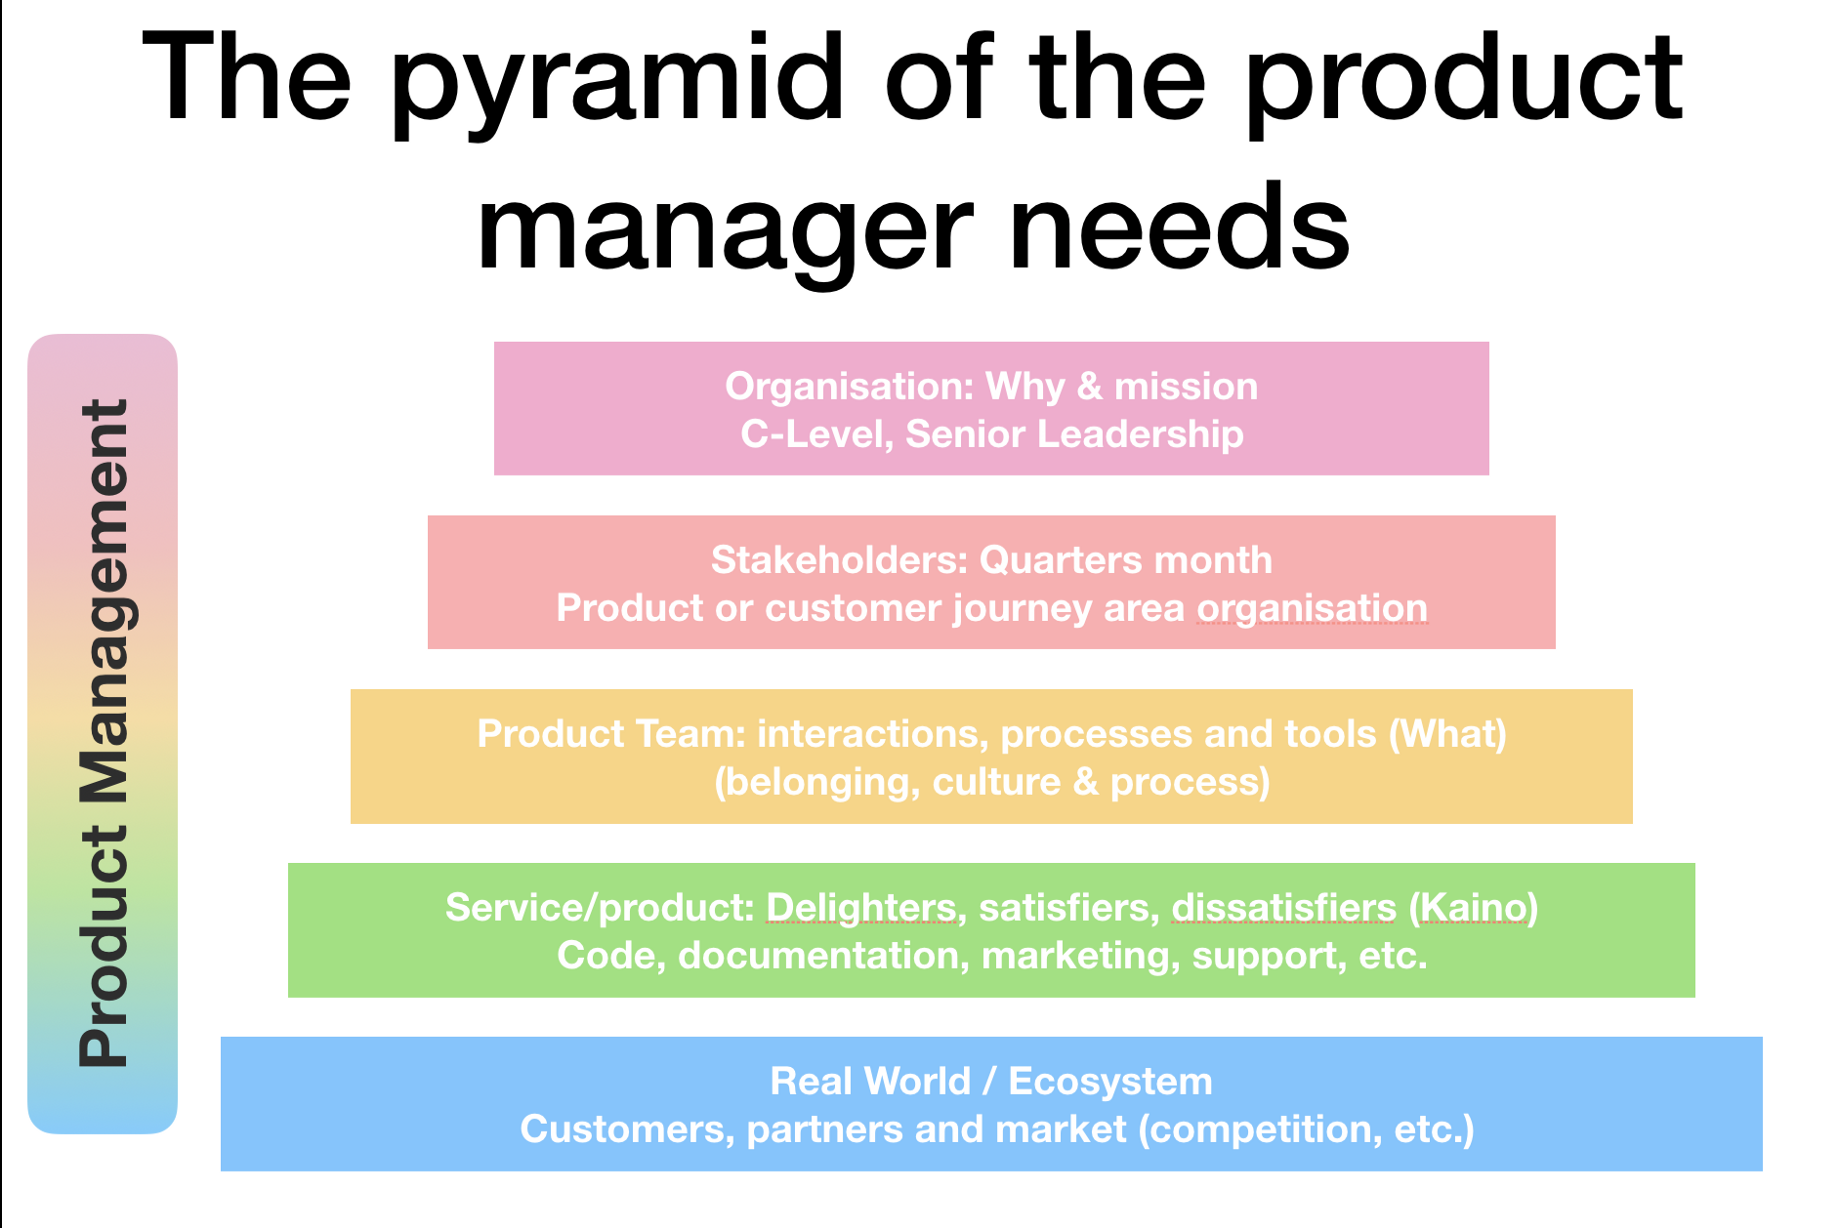 The pyramid of the product manager needs (Maslow inspired)